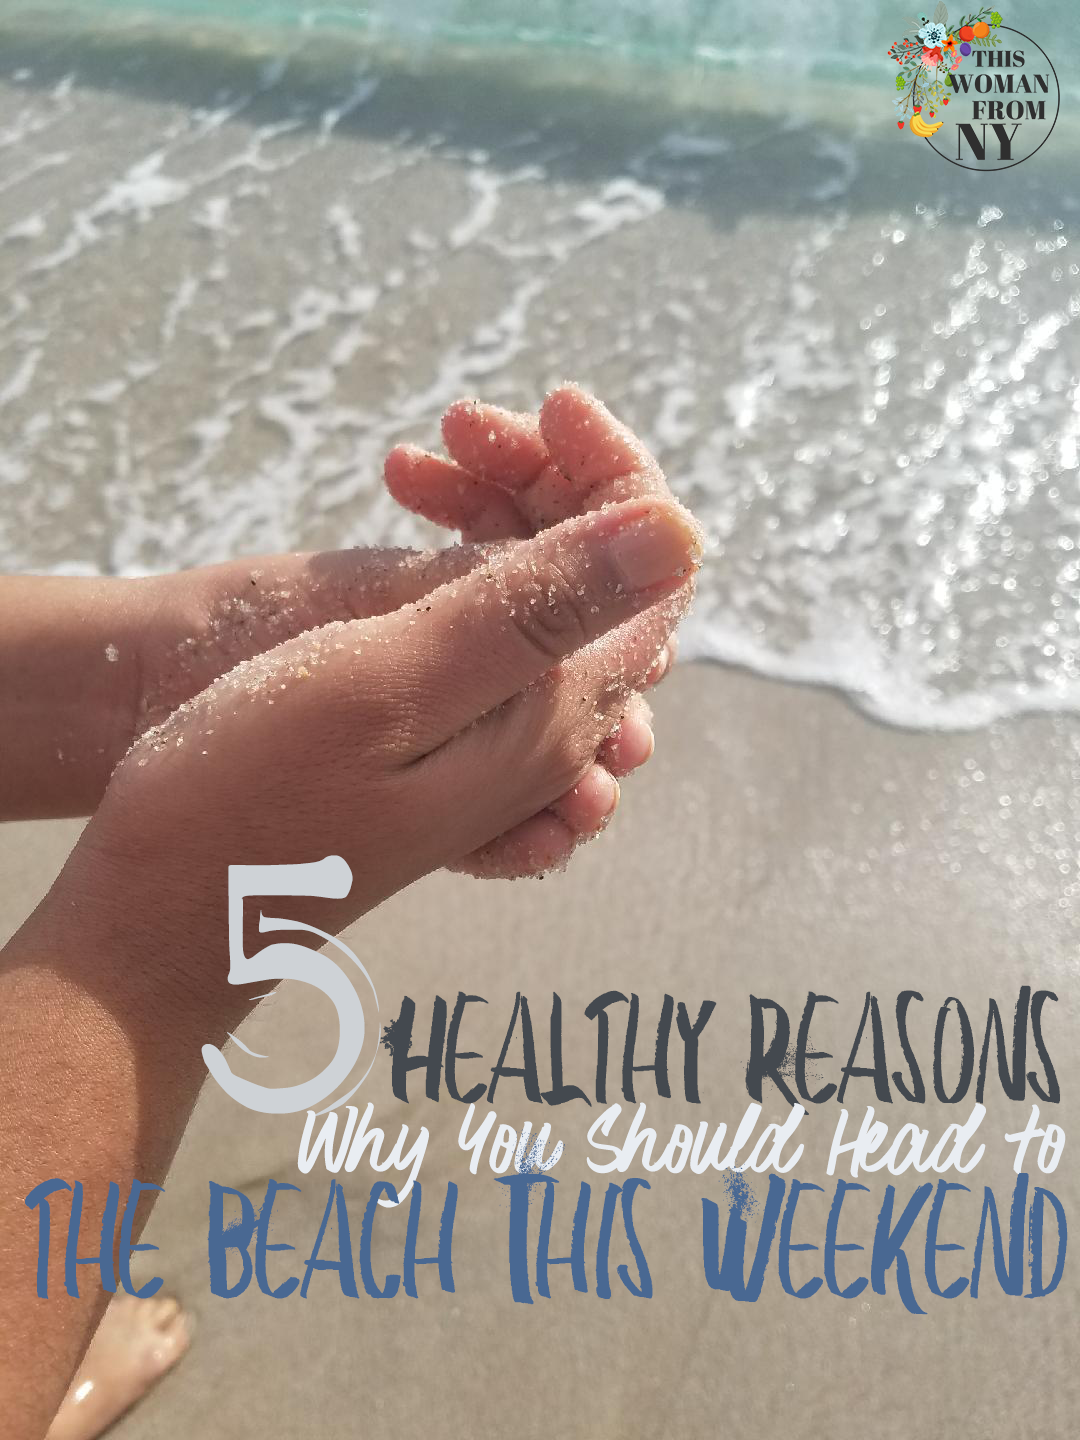 5 Healthy Reasons Why You Should Head to the Beach This Weekend | THISWOMANFROMNY